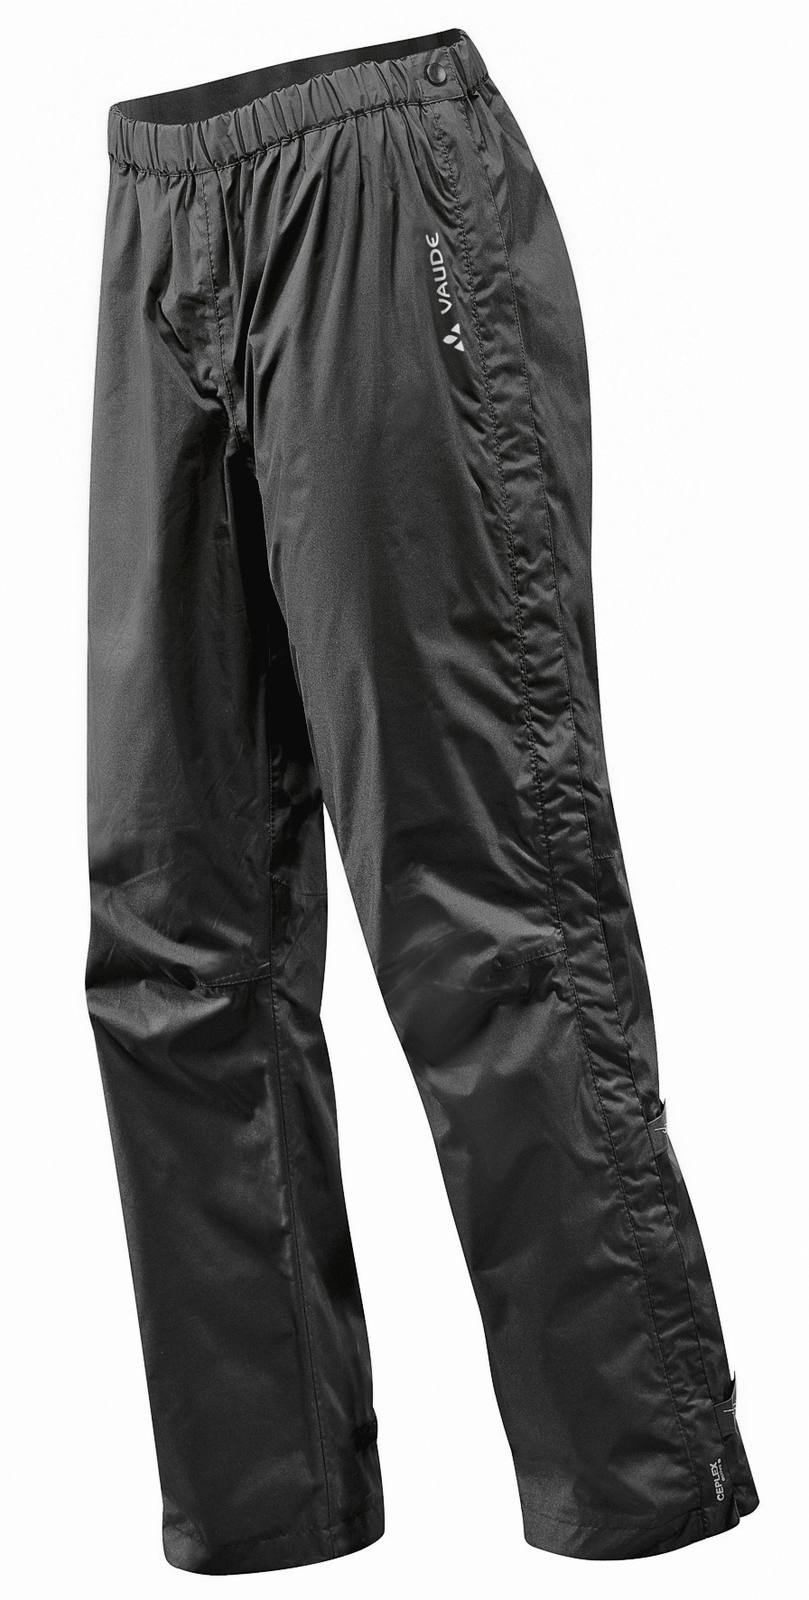 VAUDE Women´s Fluid Full-Zip Pants S/S black Größe 34 - schneider-sports